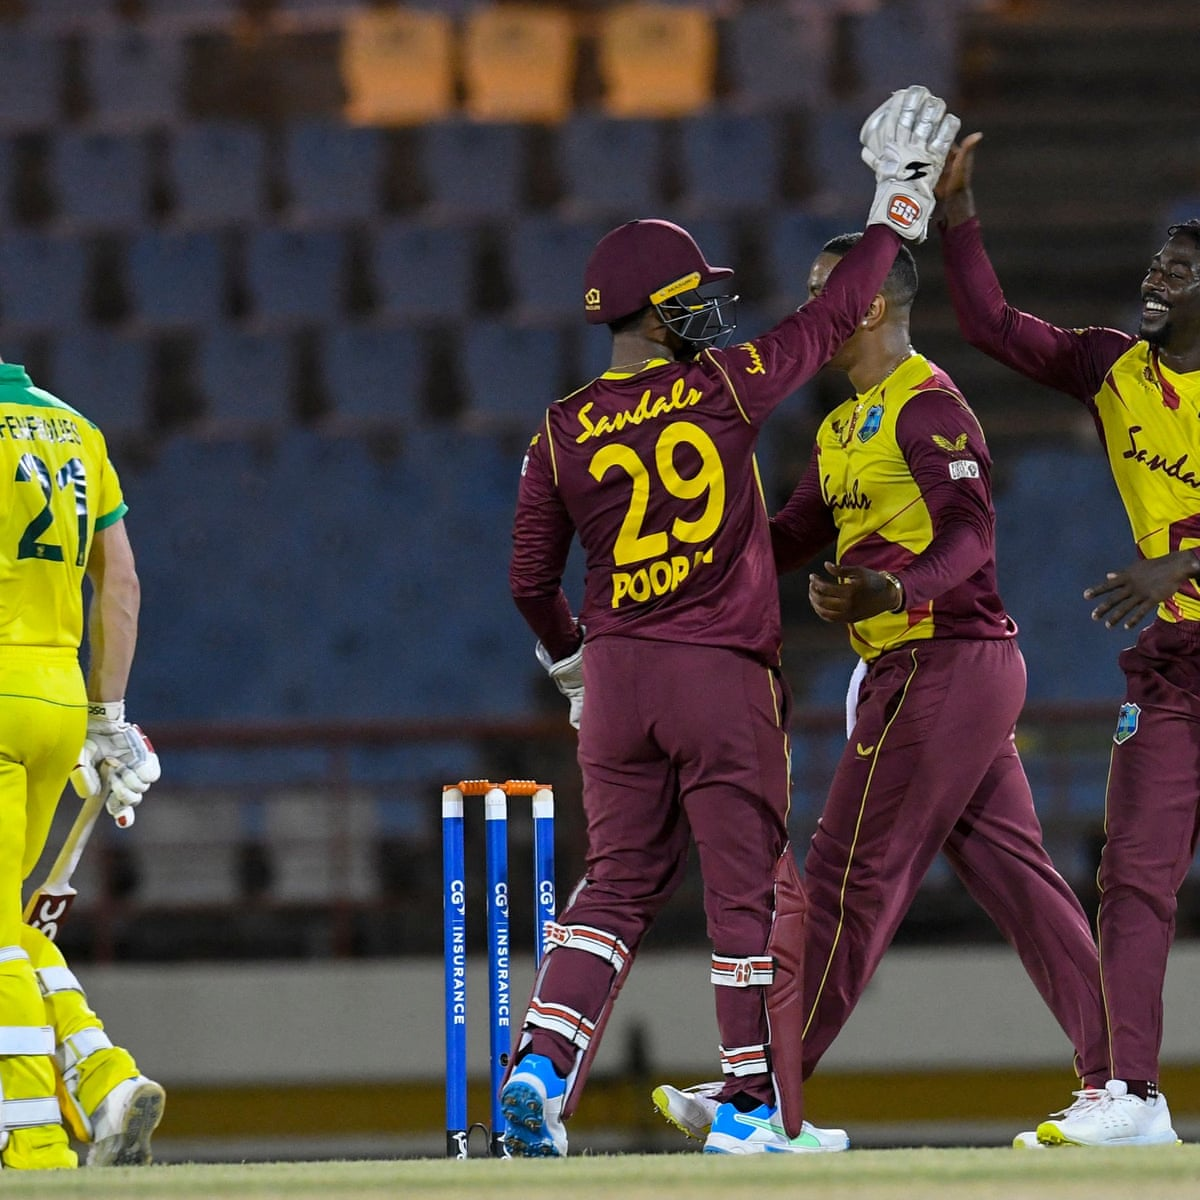 West Indies Beat Australia By 56 Runs In Second T20 International Live Sport The Guardian